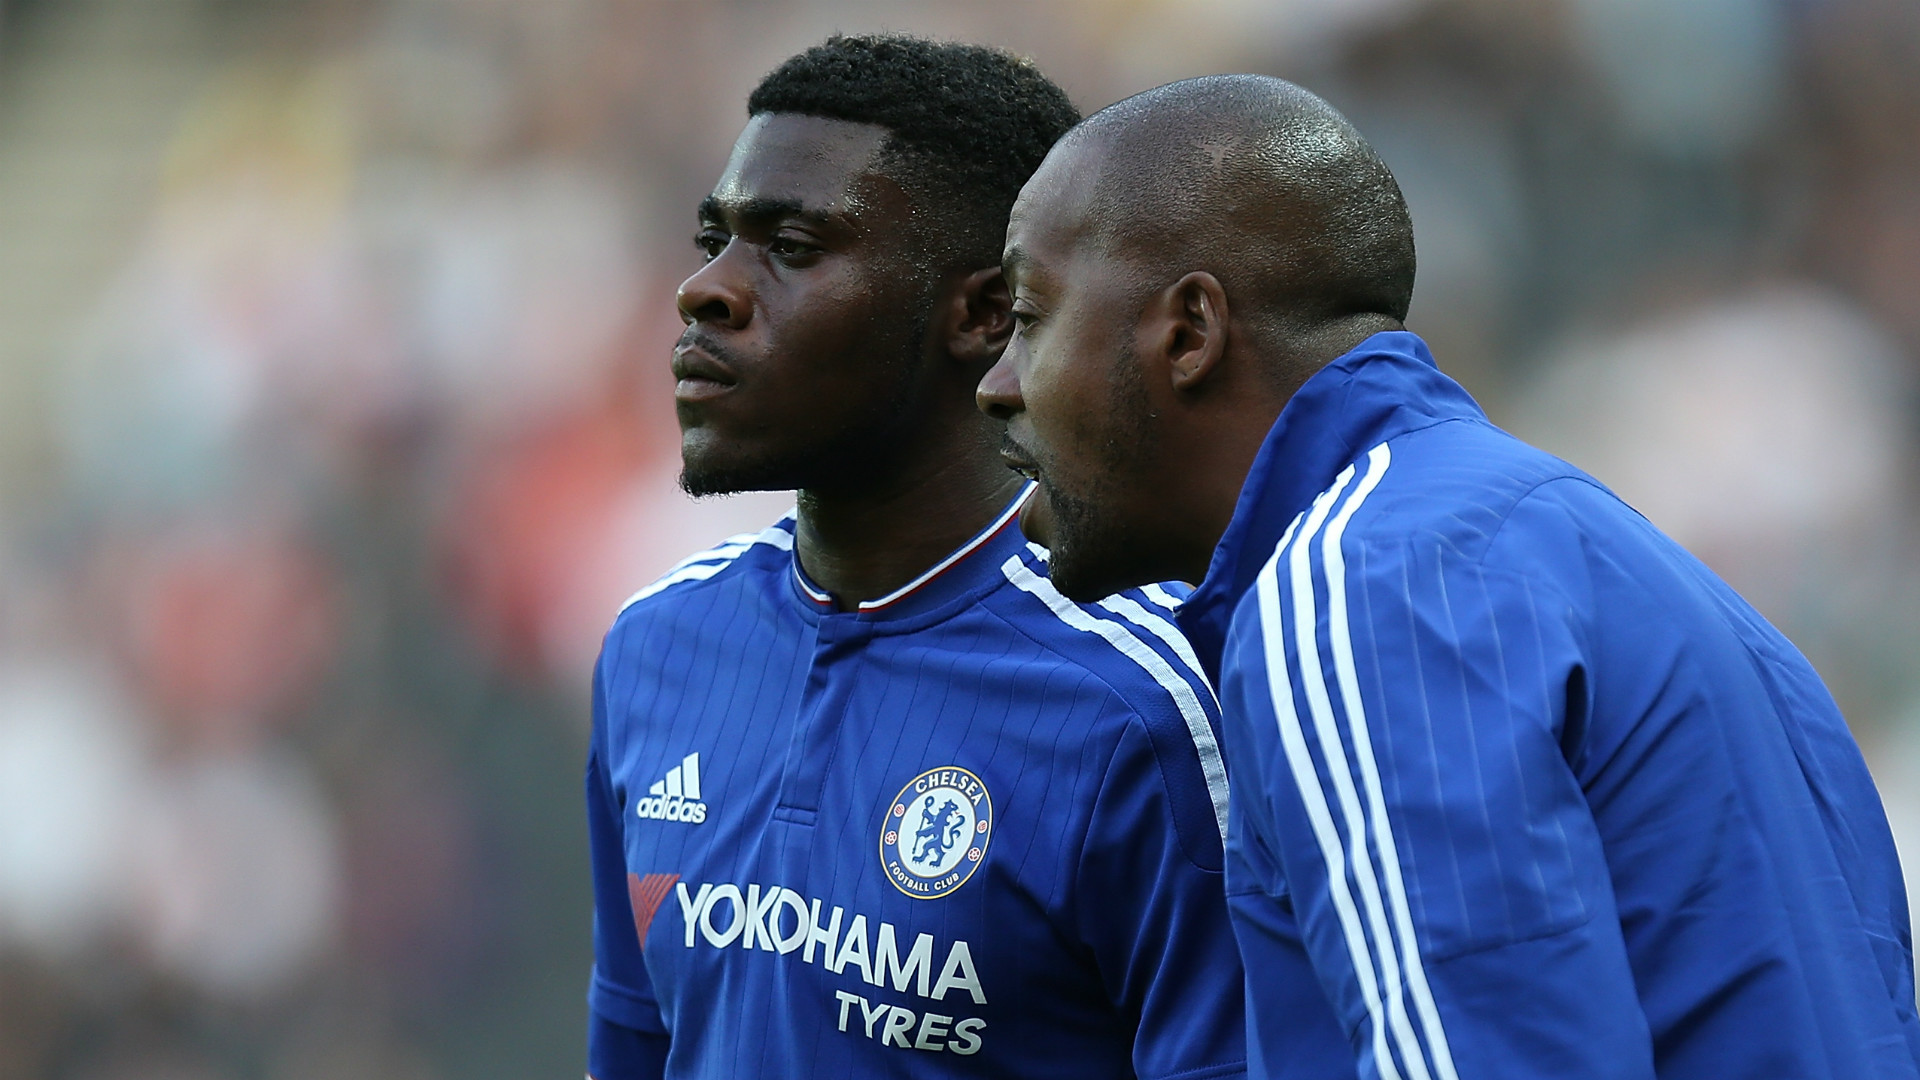 Jeremie Boga: Birmingham City sign midfielder on season loan from Stamford Bridge